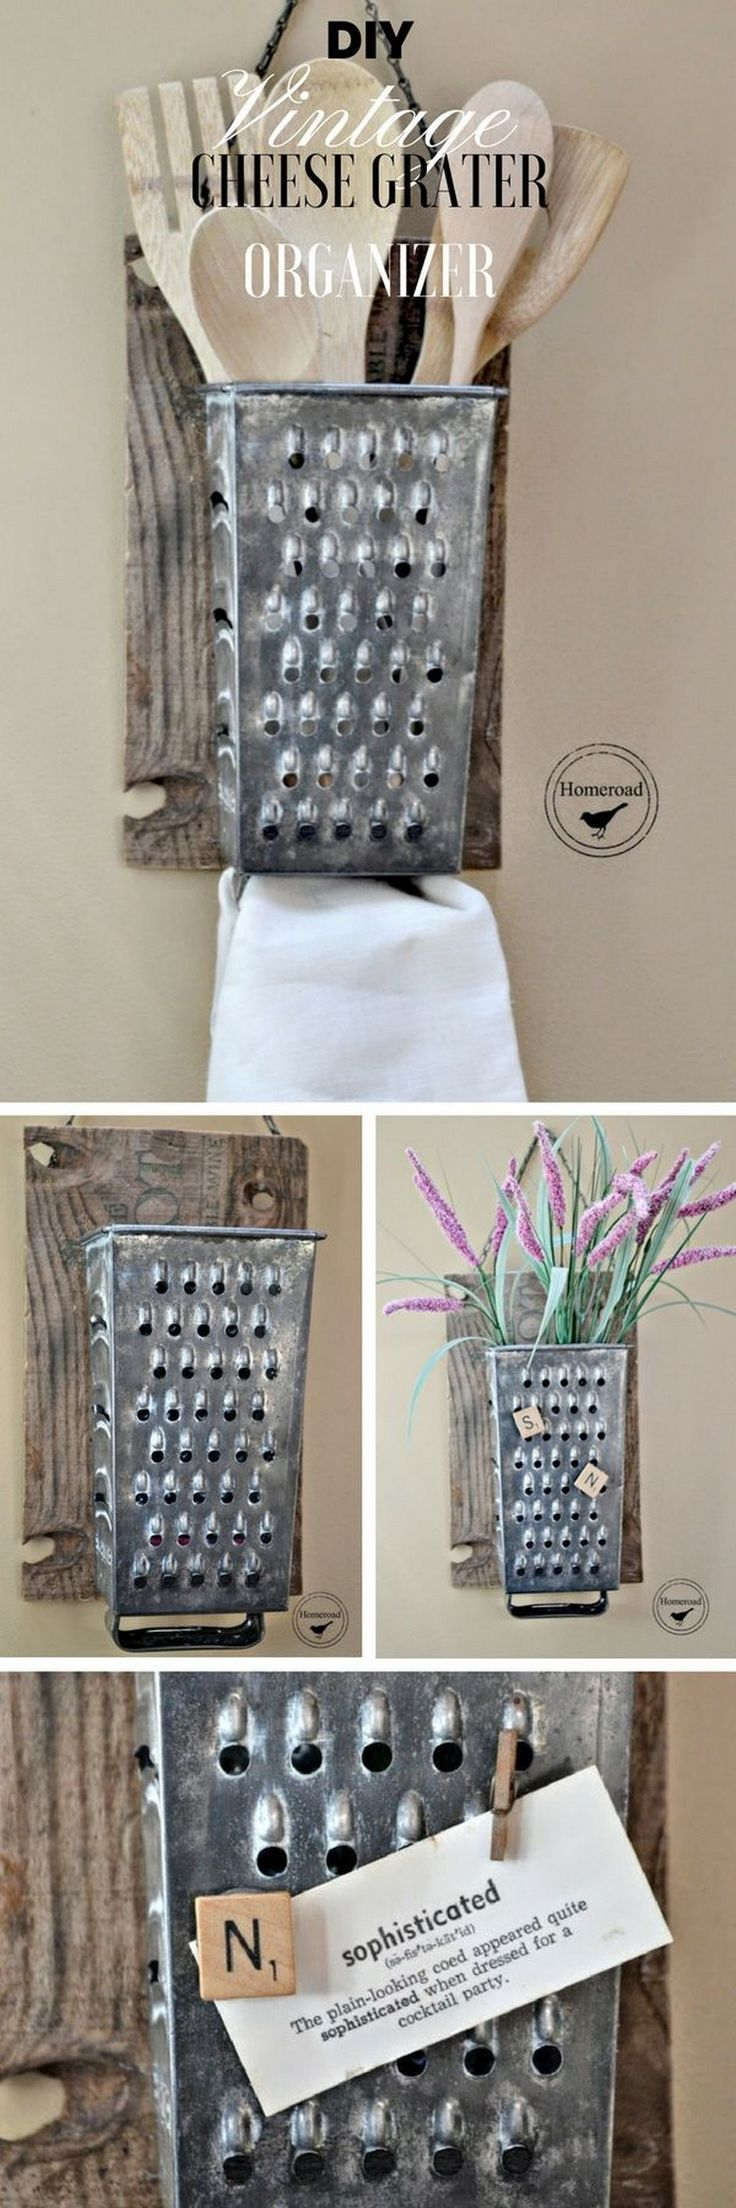 Best 25 Rustic Home Decorating Ideas On Pinterest Dog